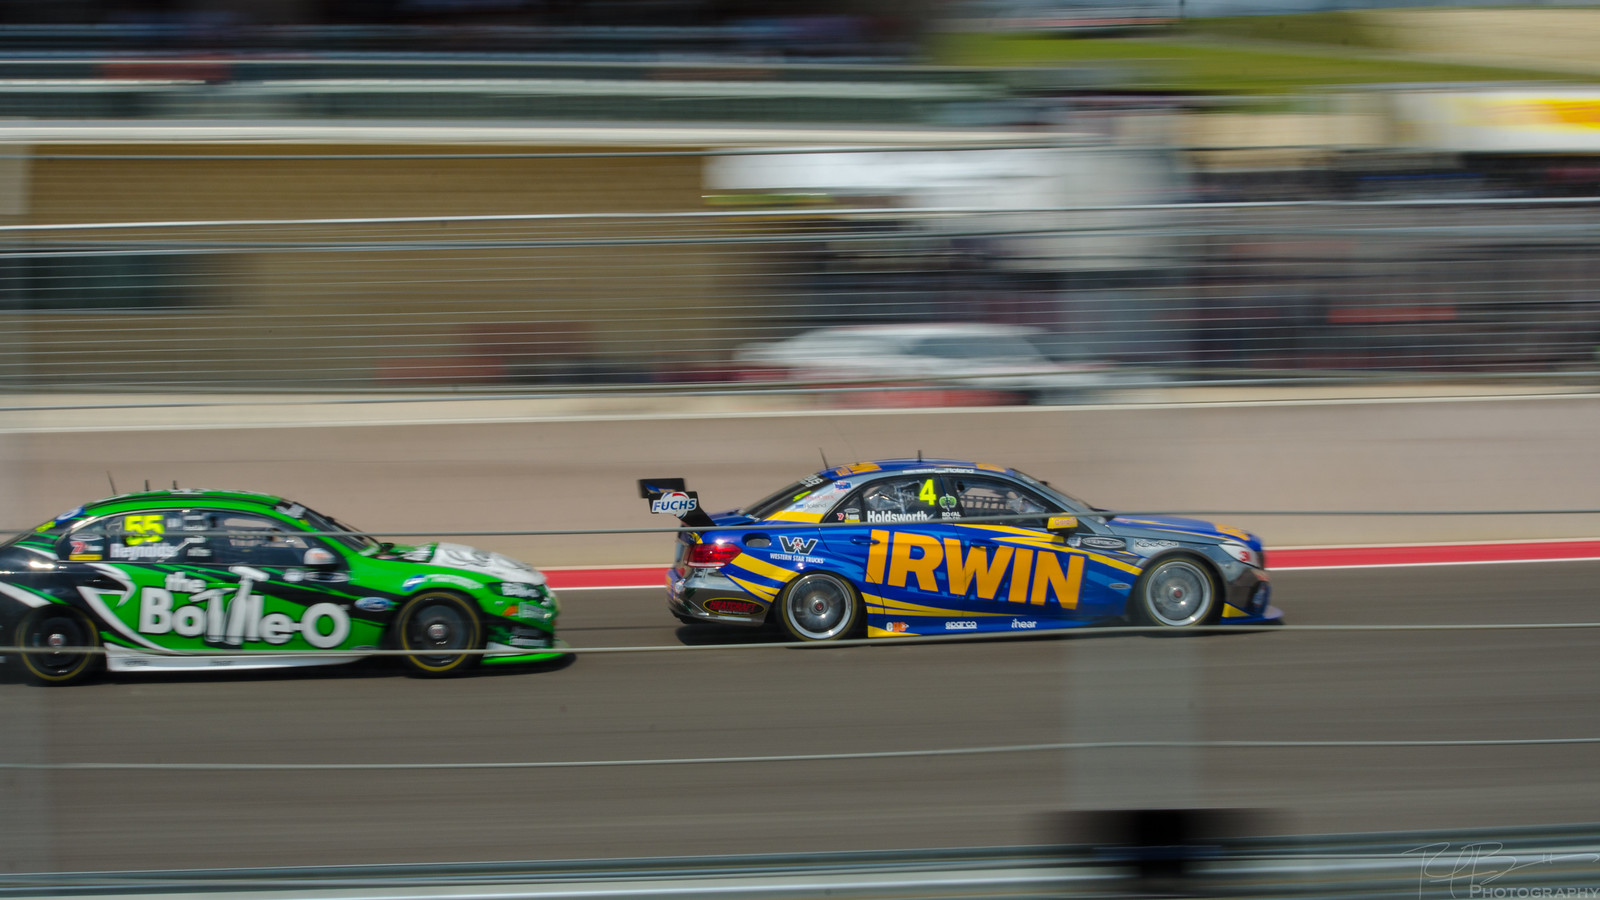 Lee Holdsworth in the AMG E63 leading David Reynolds in the Ford Falcon